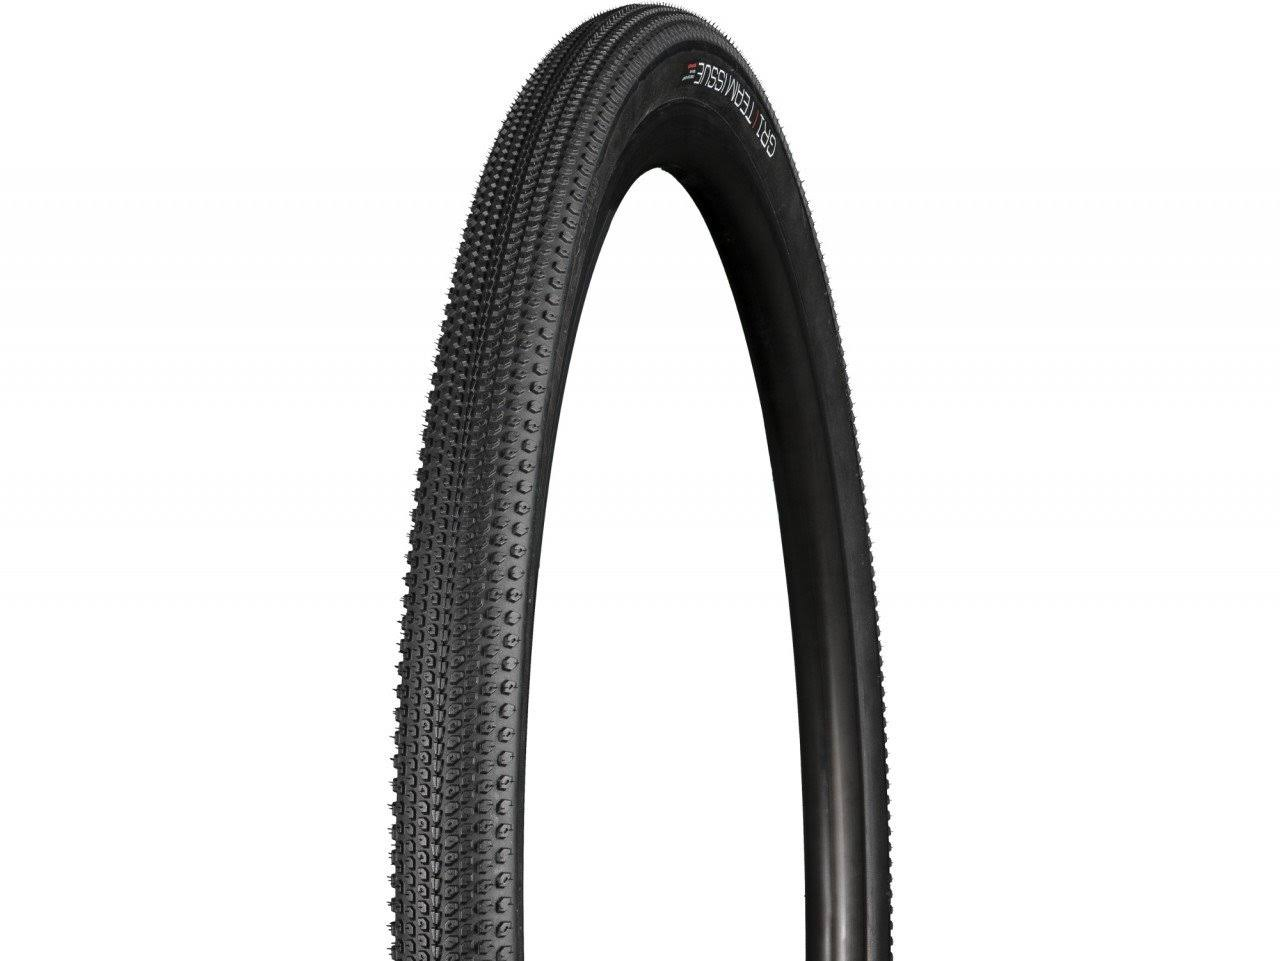 Bontrager GR1 Team Issue Gravel Tire - Black - 700 x 40C